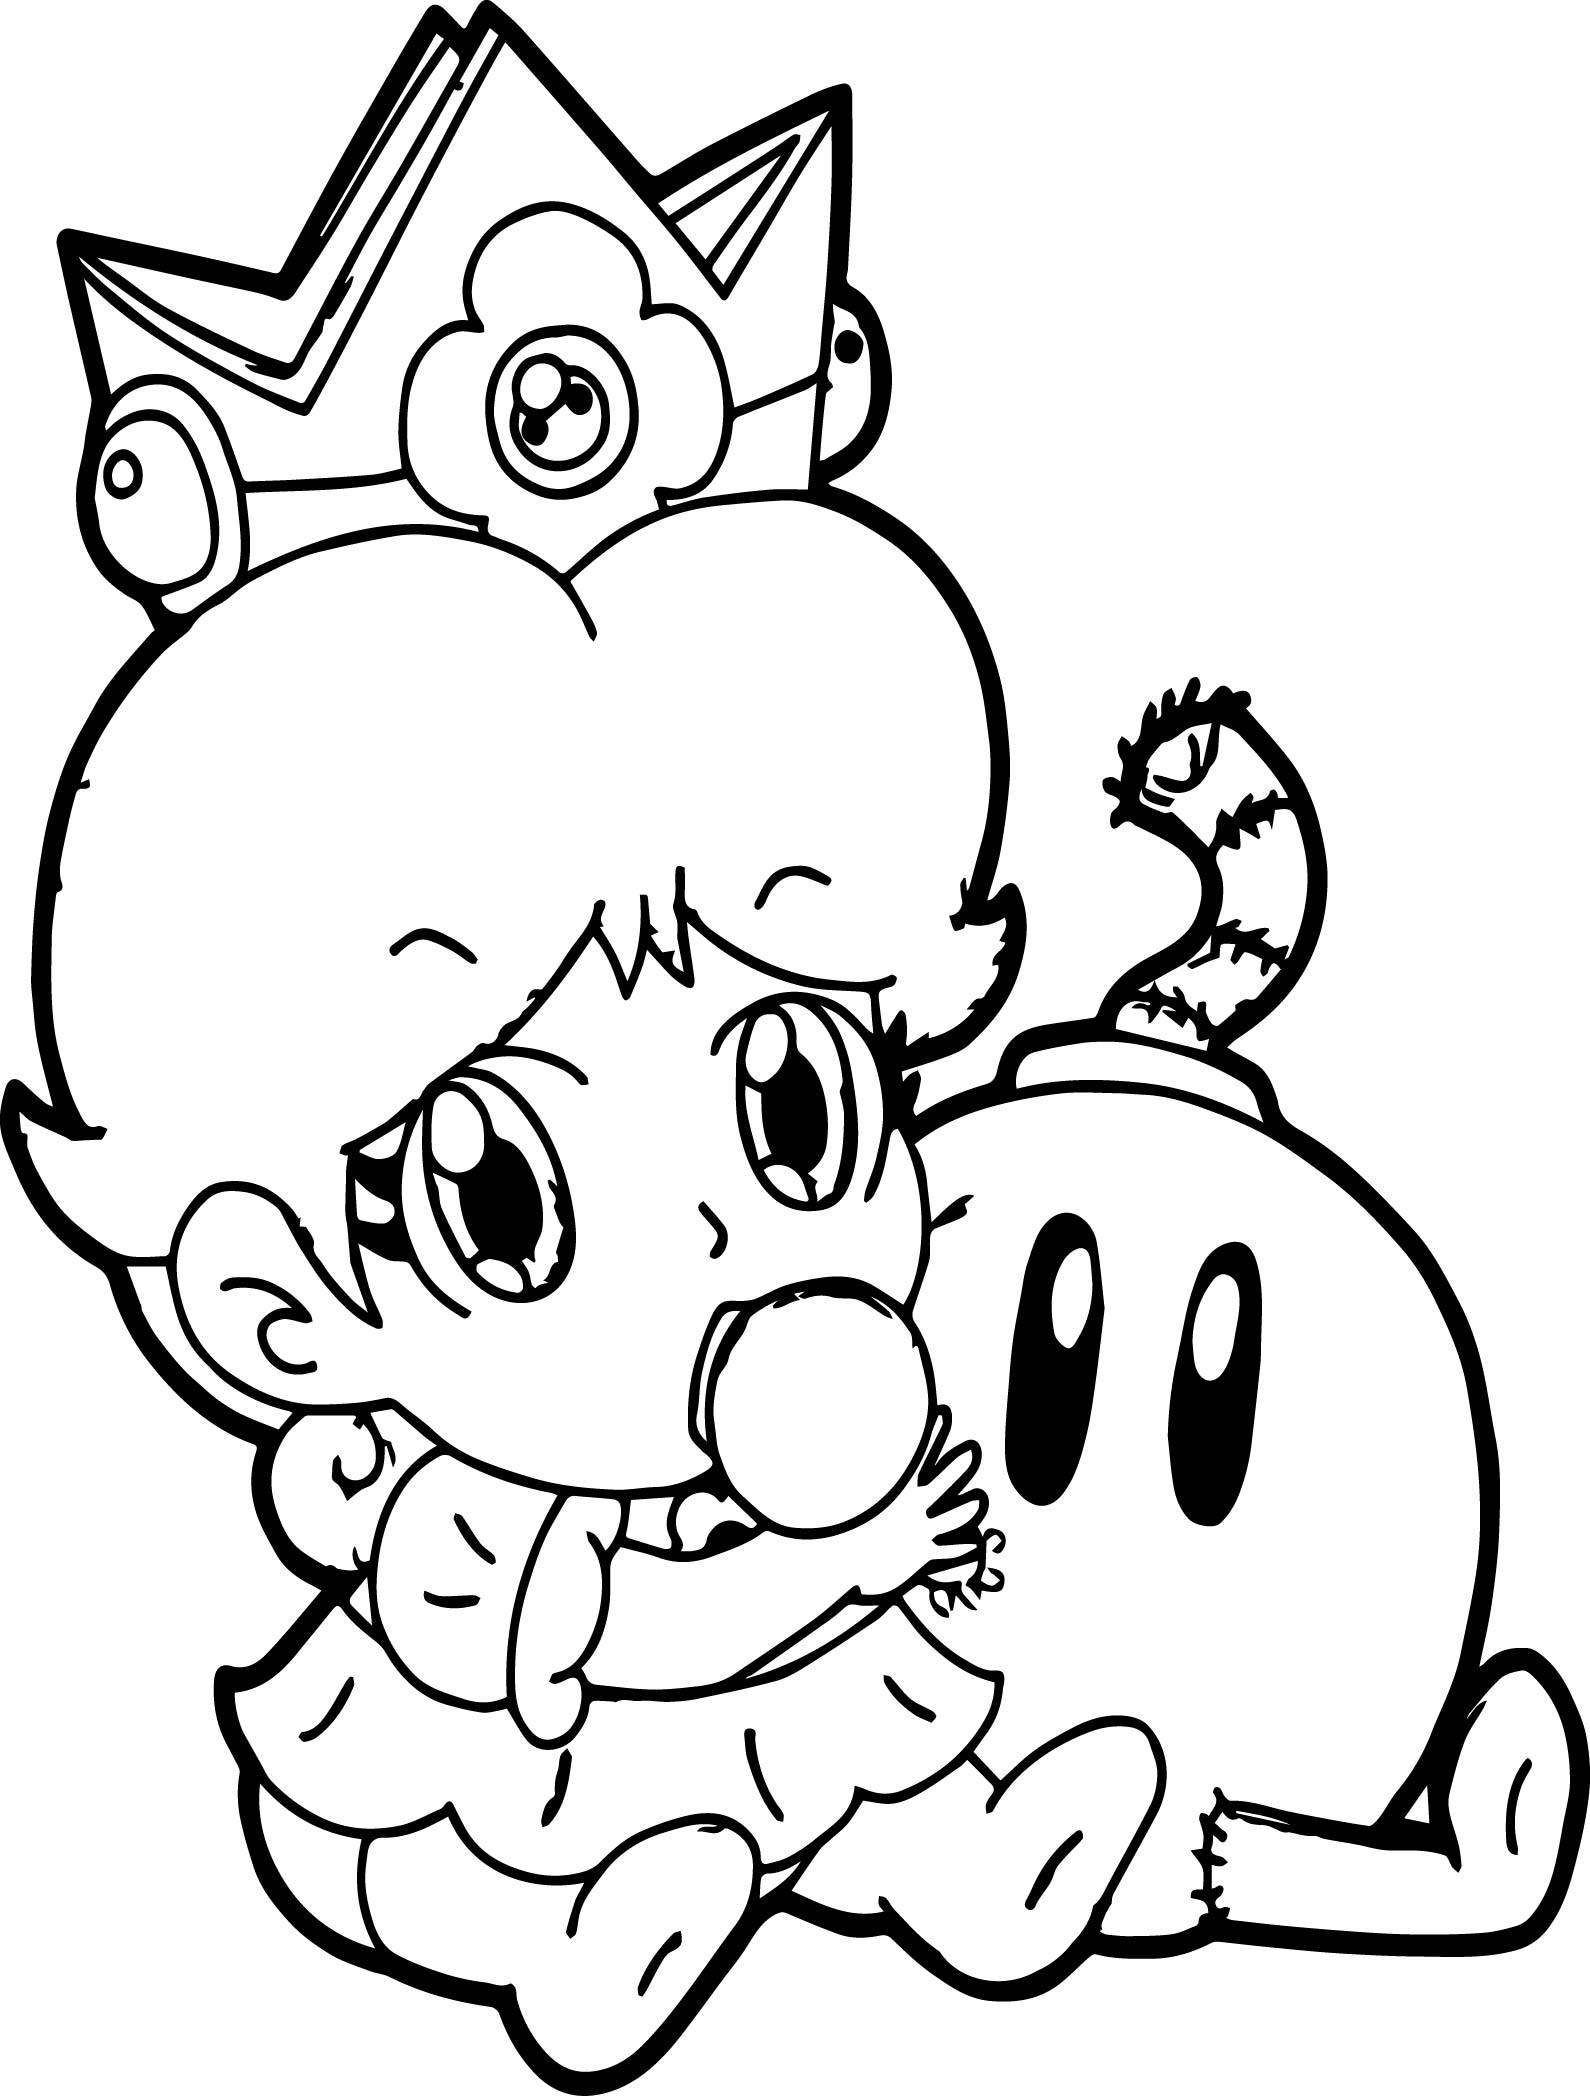 Baby Daisy Coloring Page